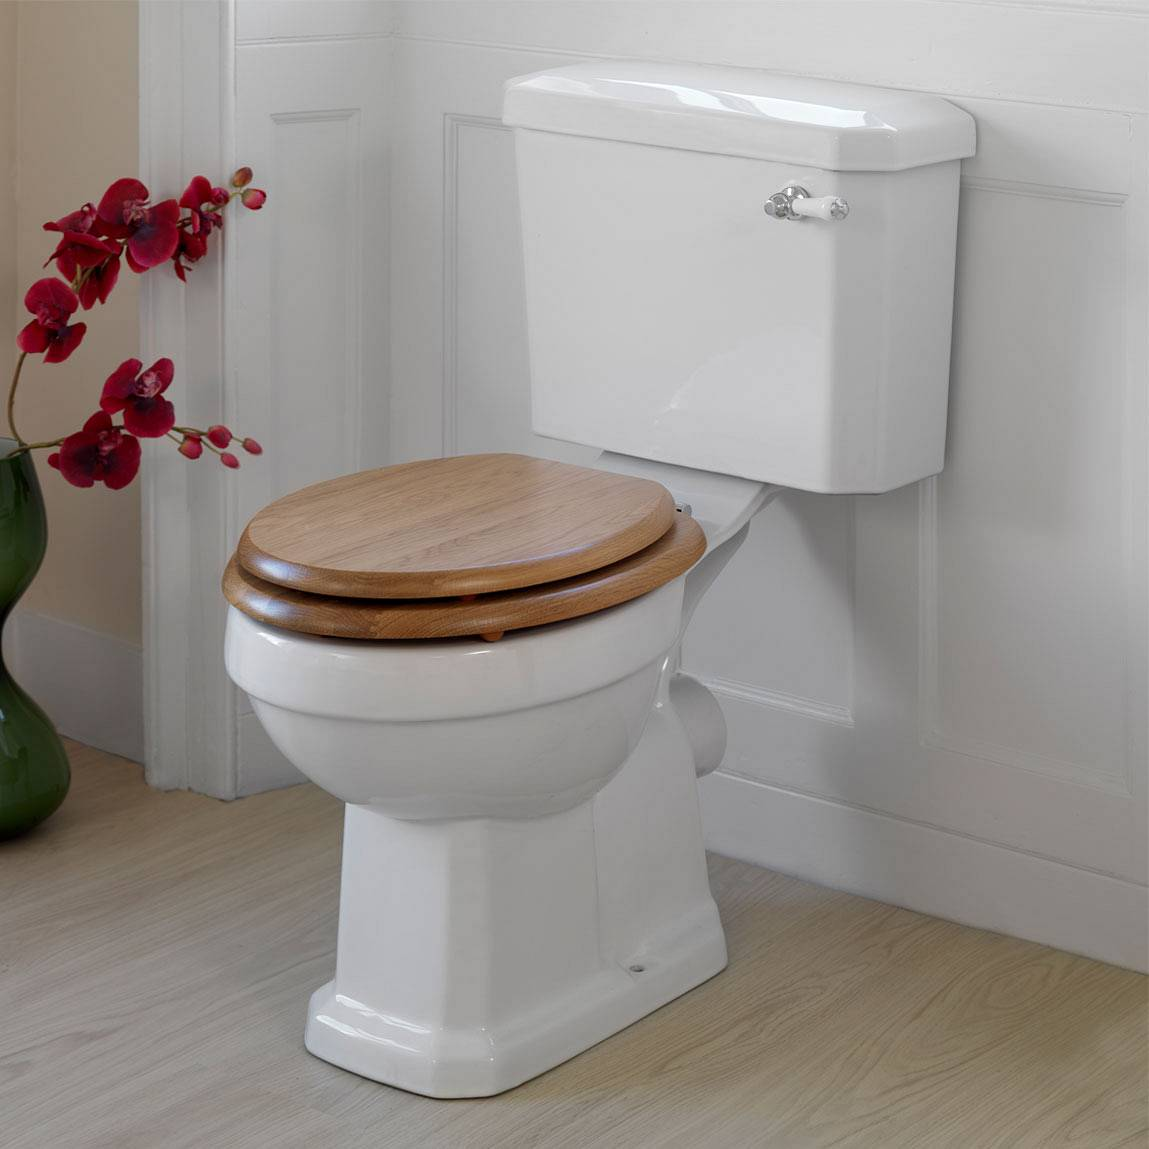 Tremendous Best Toilet Seat Heated And Soft Toilet Seats Pabps2019 Chair Design Images Pabps2019Com